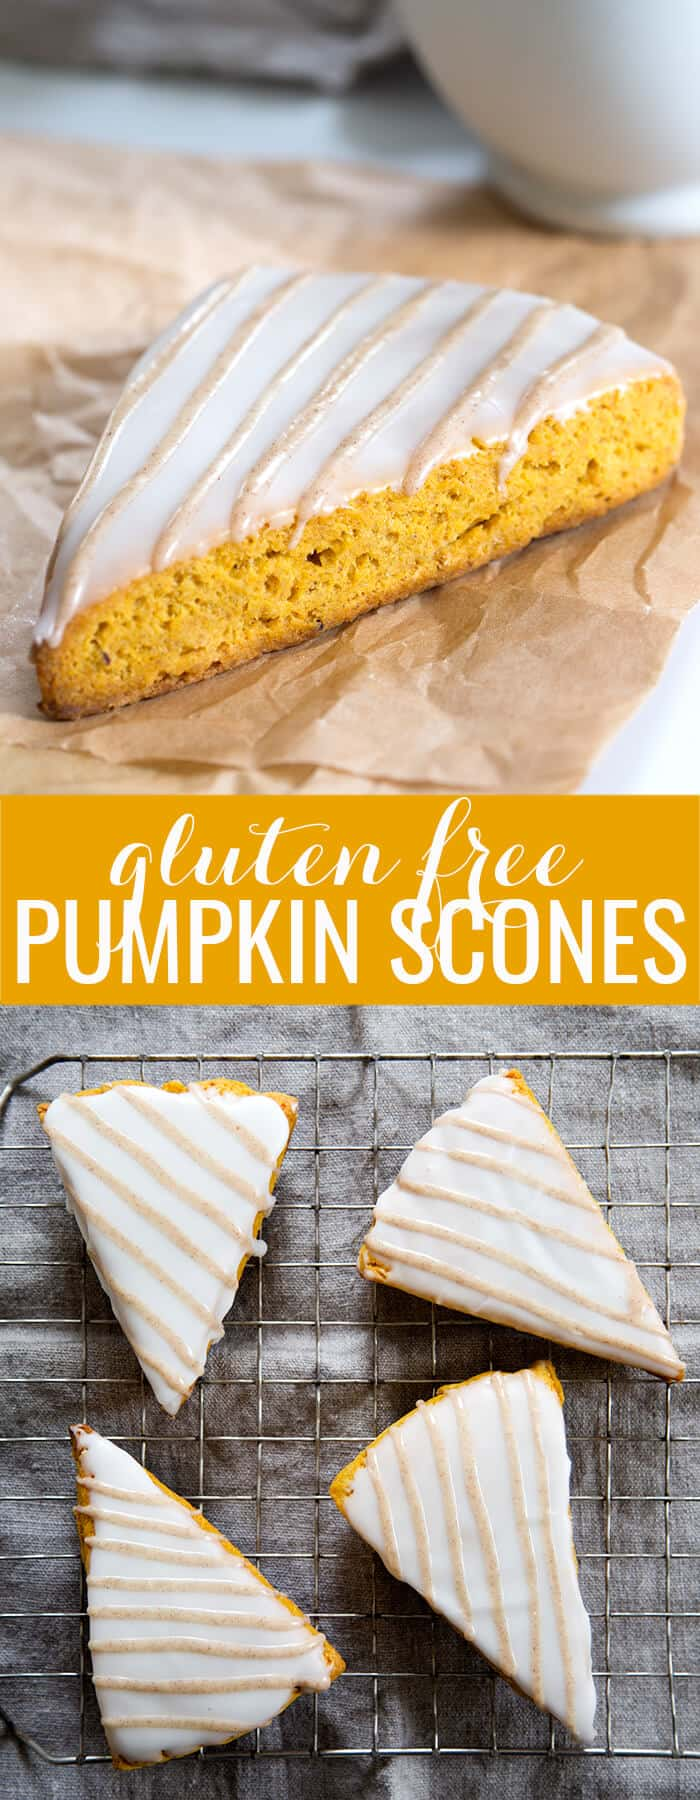 Side view of pumpkin scone on parchment paper and overhead view of scones on metal tray below